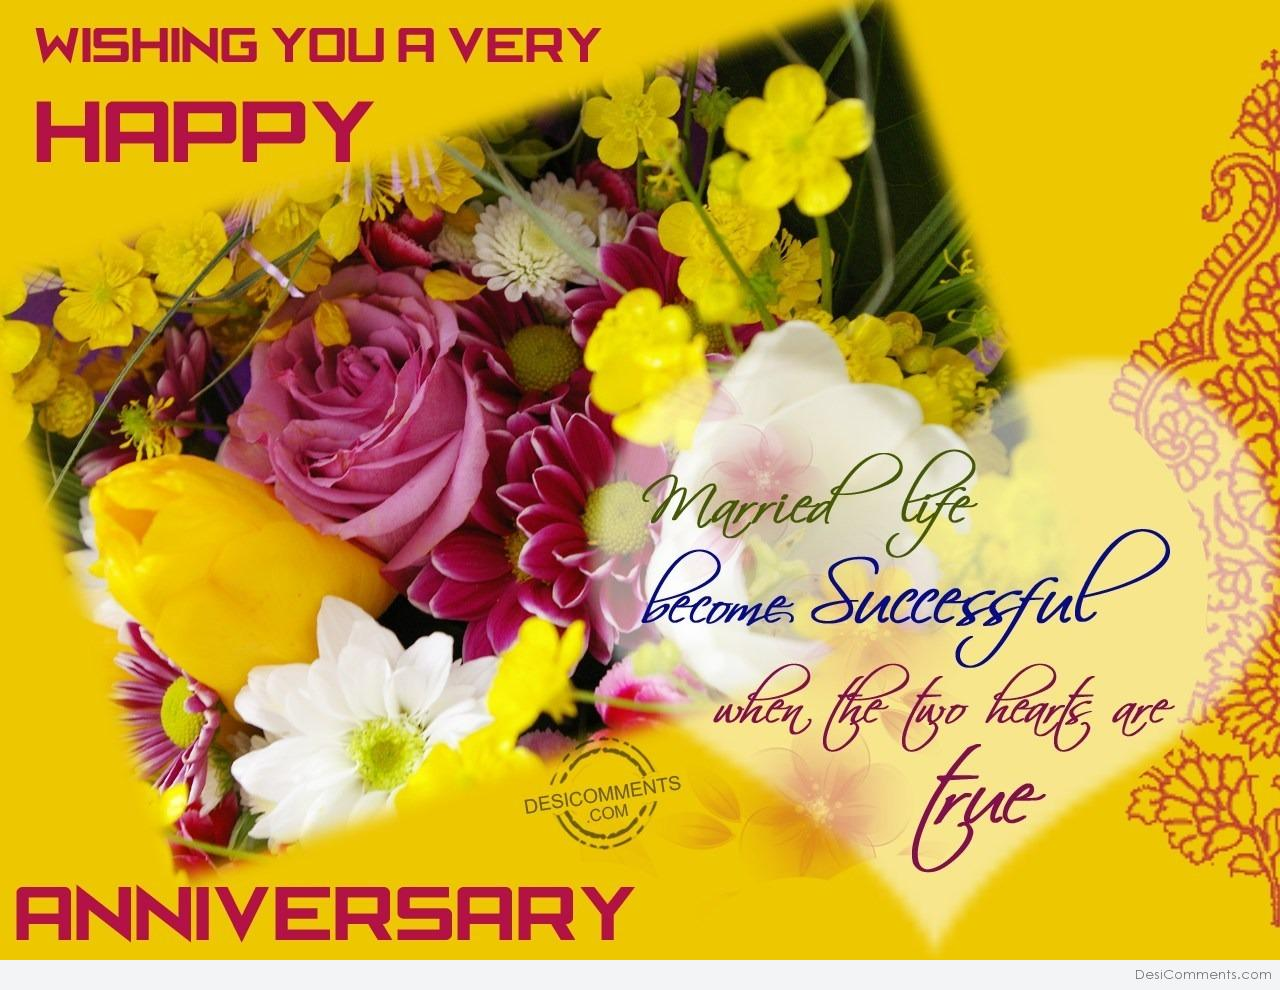 Wishing you very happy wedding anniversary desicomments